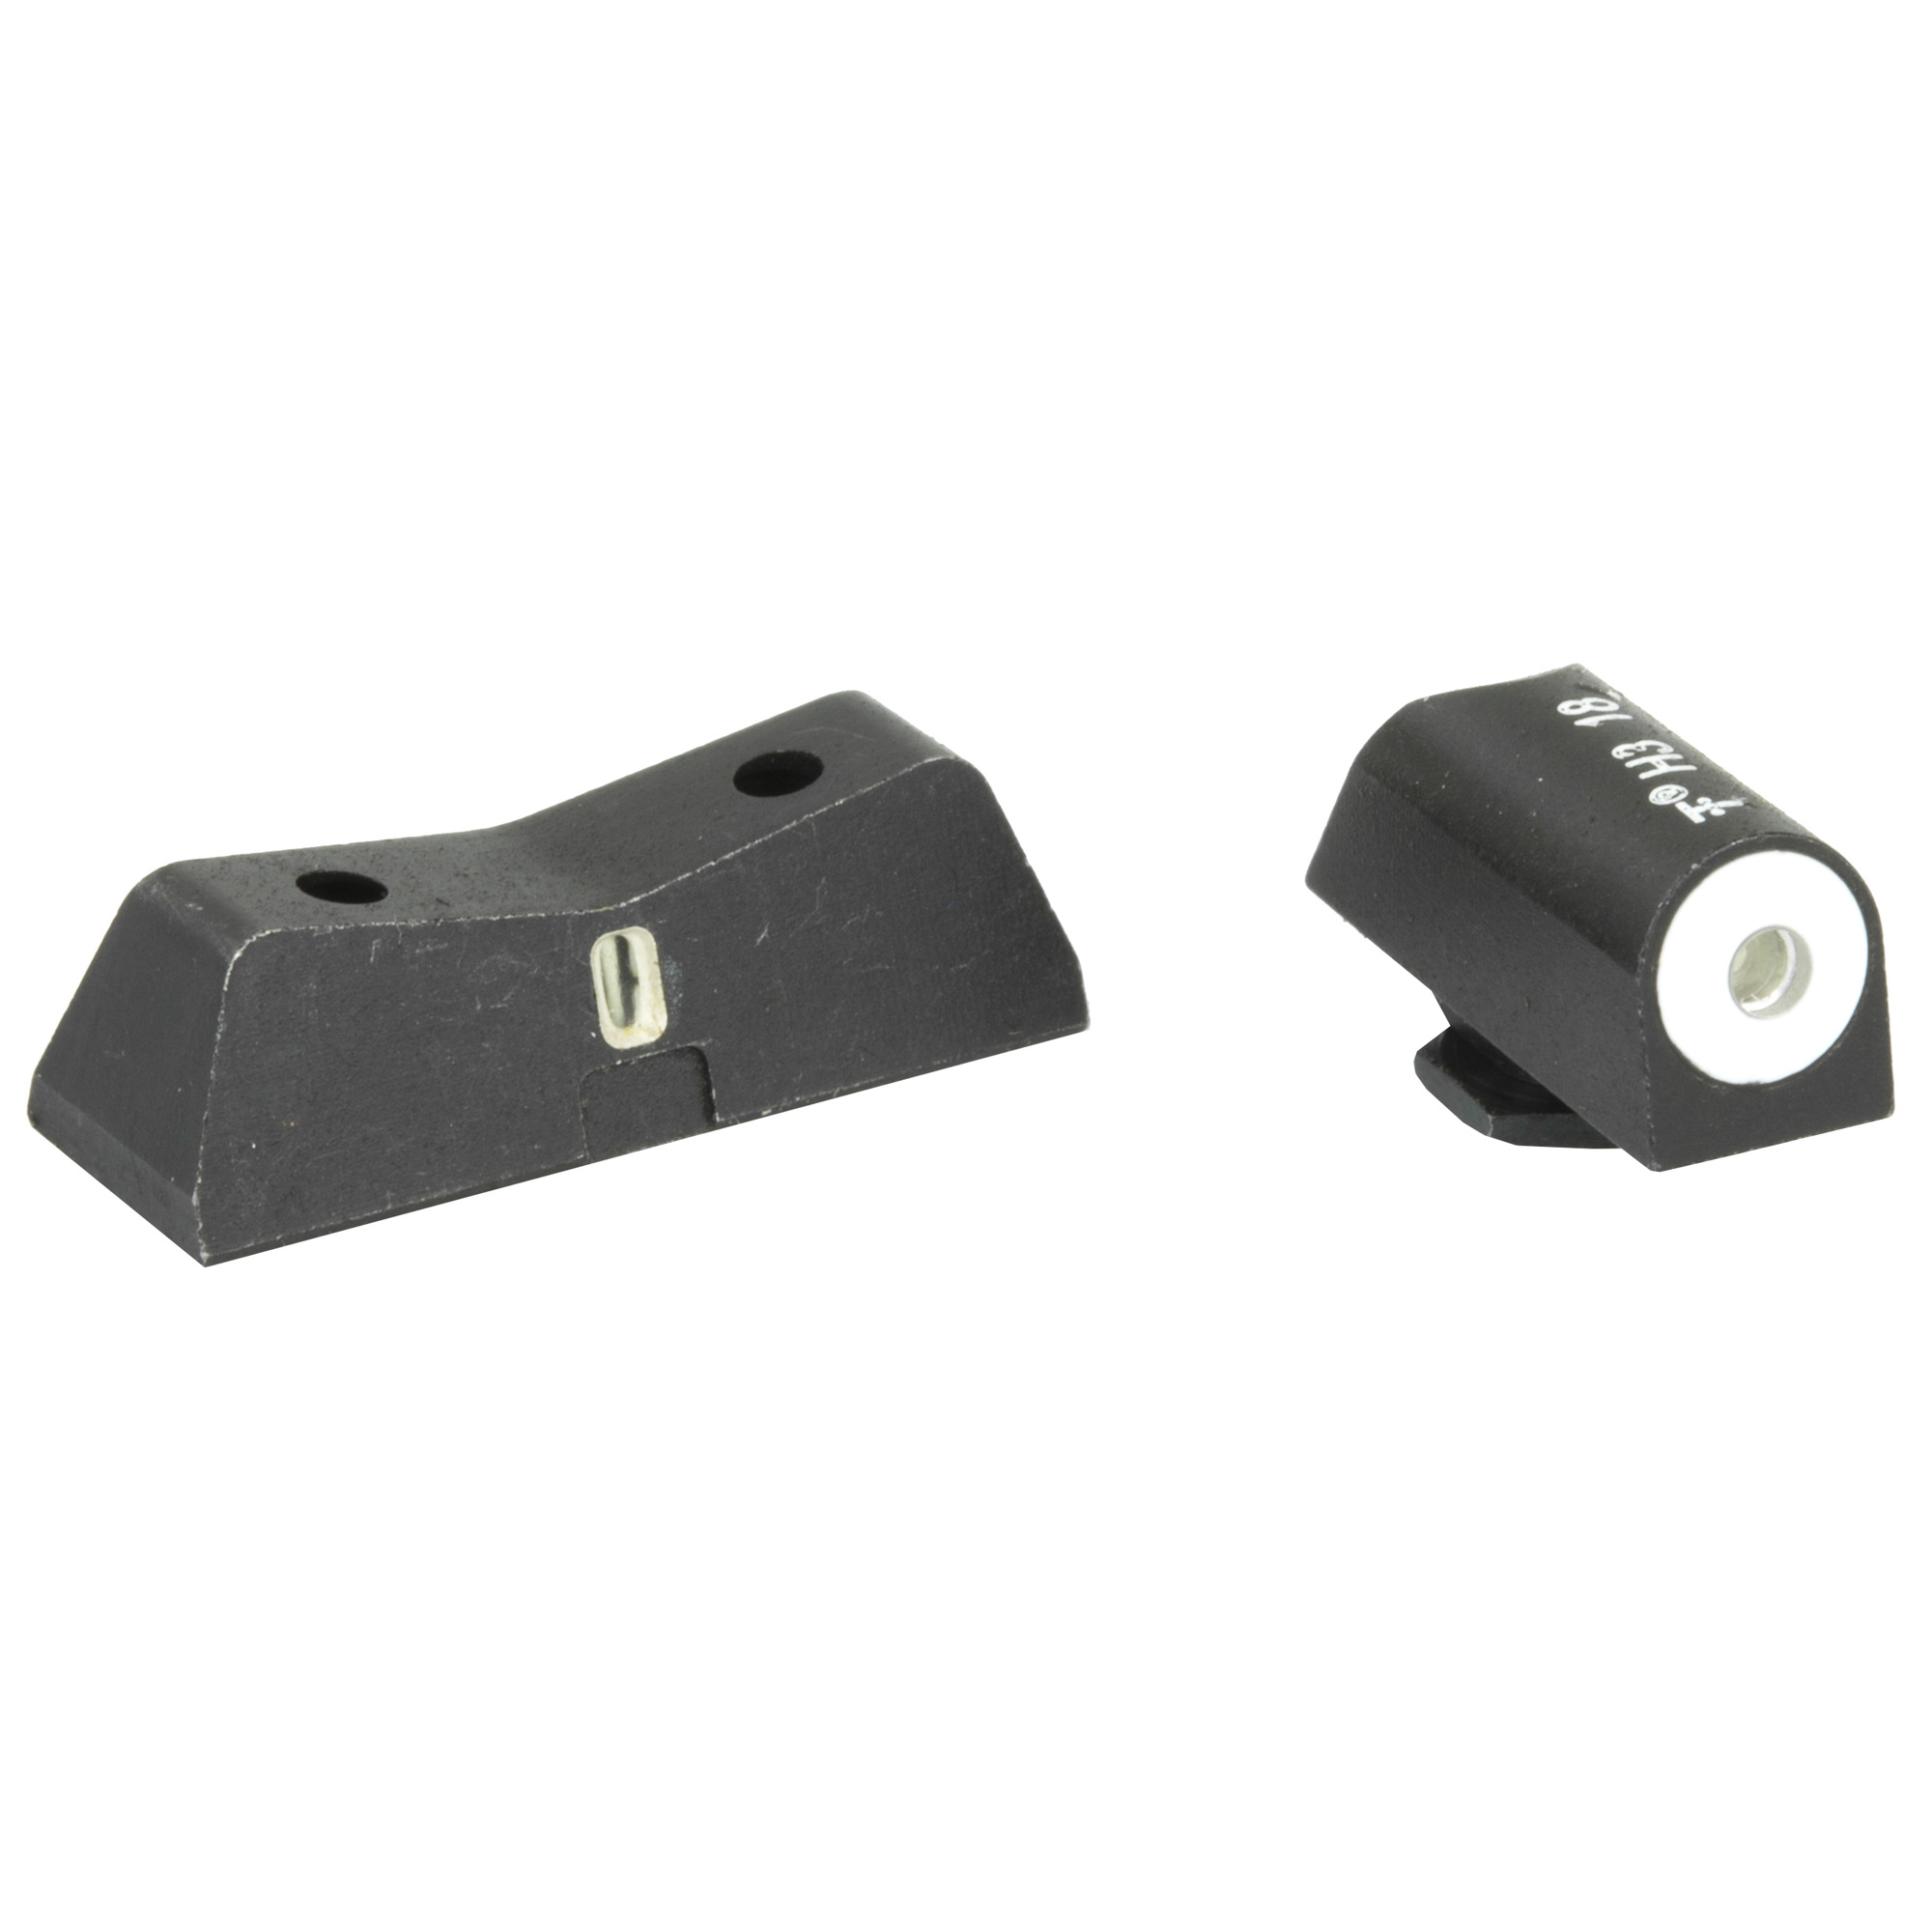 "The XS DXT Big Dot night sight is the ultimate defensive sight set. Fits Glock models 42 & 43. Precision machined in Fort Worth"" TX"" XS Sights feature a Big Dot Tritium front sight and express rear sight with a vertical tritium stripe for fast sight acquisition in all light conditions. Big Dot demands your attention - even in high stress and for those with poor eyesight"" aids in rapidly achieving combat effective hits. White dot reflects ambient light for best visibility in low light. Shallow V-Notch rear provides an unobstructed view of the front sight"" along with a greater field of view down range"" especially when moving and shooting. Day-Light"" Half-Light"" or Low-Light"" just ""dot the i"" and center the dot over your target within 15 yards. Outside Diameter Big Dot 0.188""; fits in common holsters. Installation might require filing to fit sight to dovetail"" do not use a sight press/pusher tool."